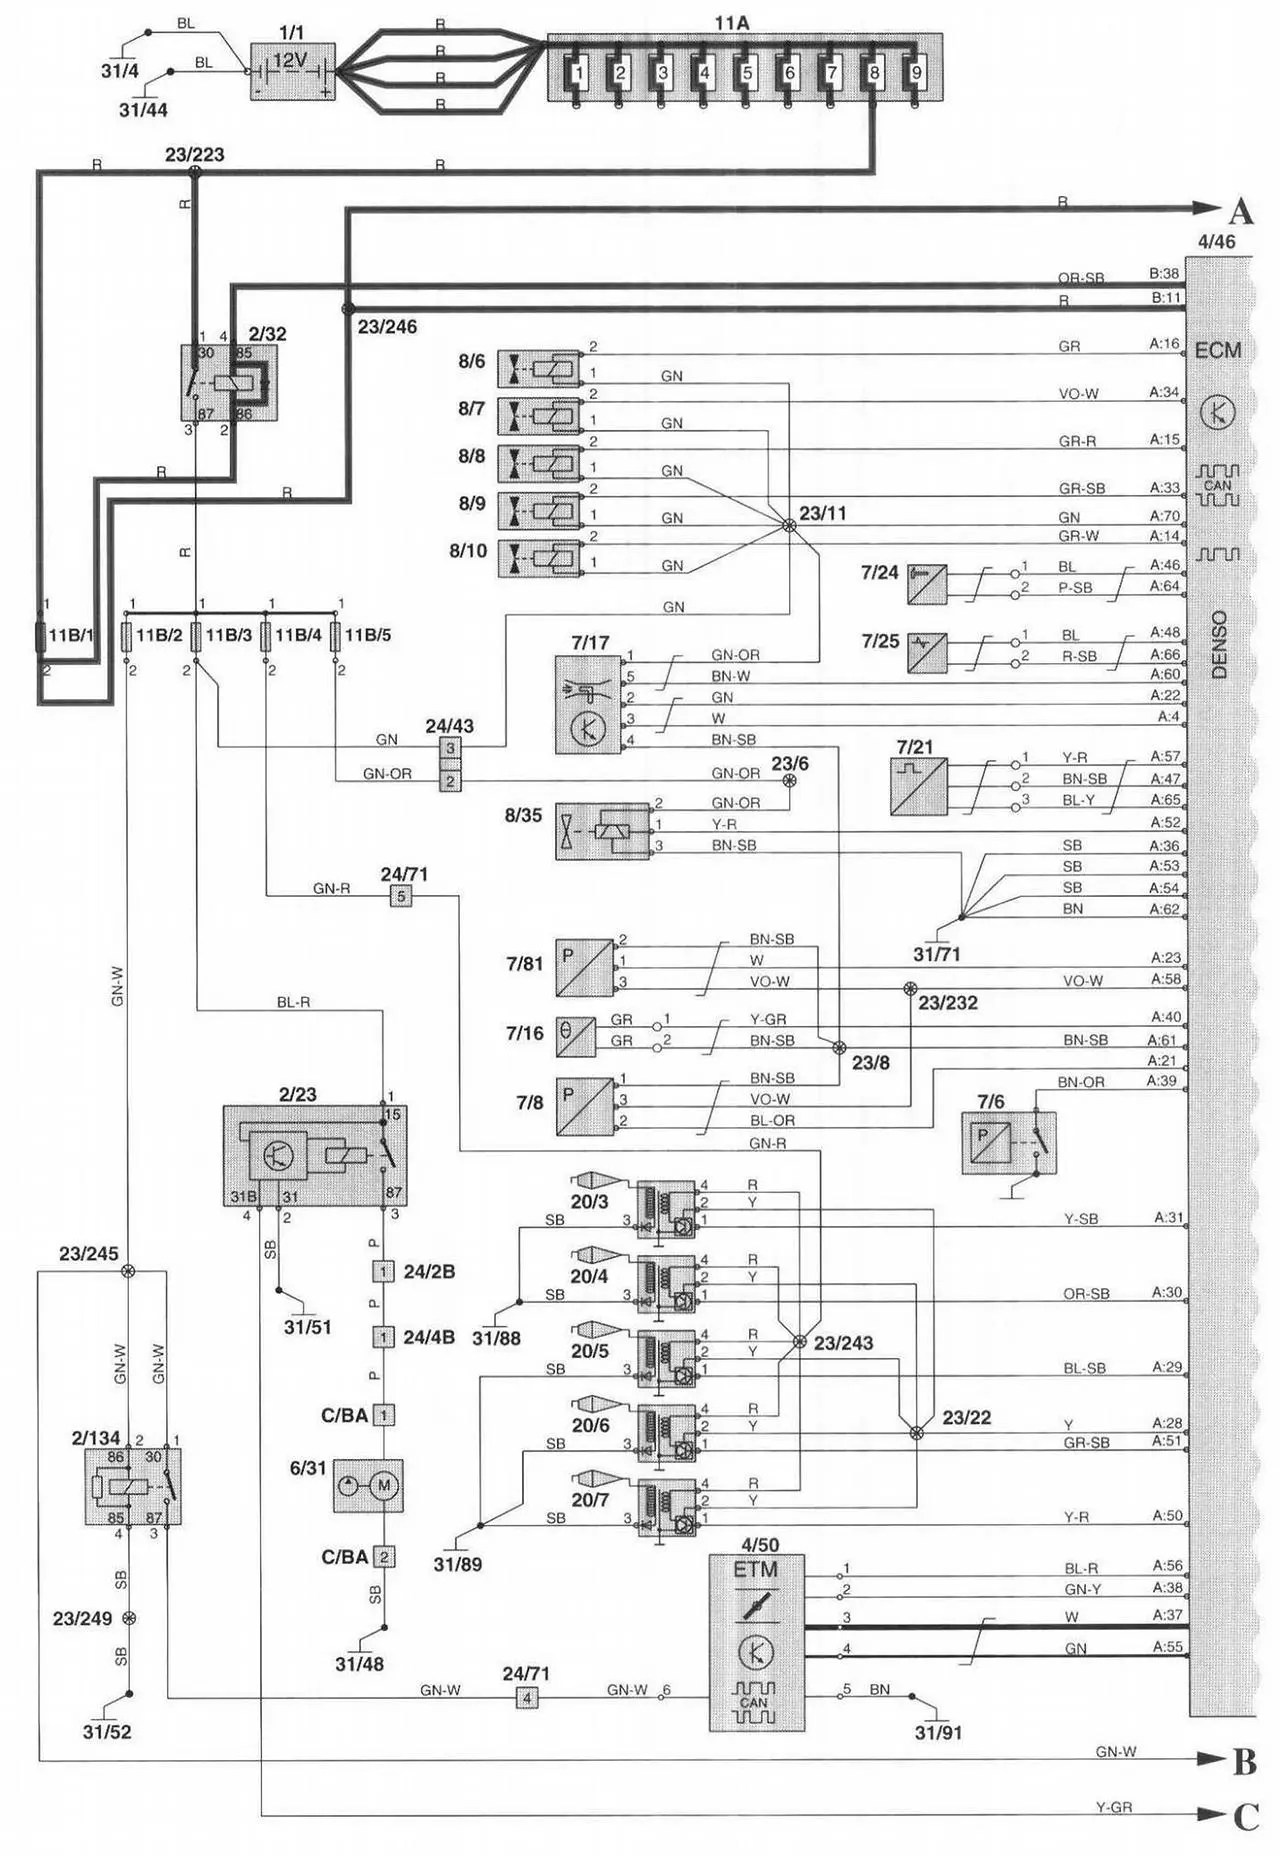 medium resolution of 99 volvo s80 wiring diagram wiring schematic diagram 127 fiercemc covolvo s80 wiring diagram wiring diagram